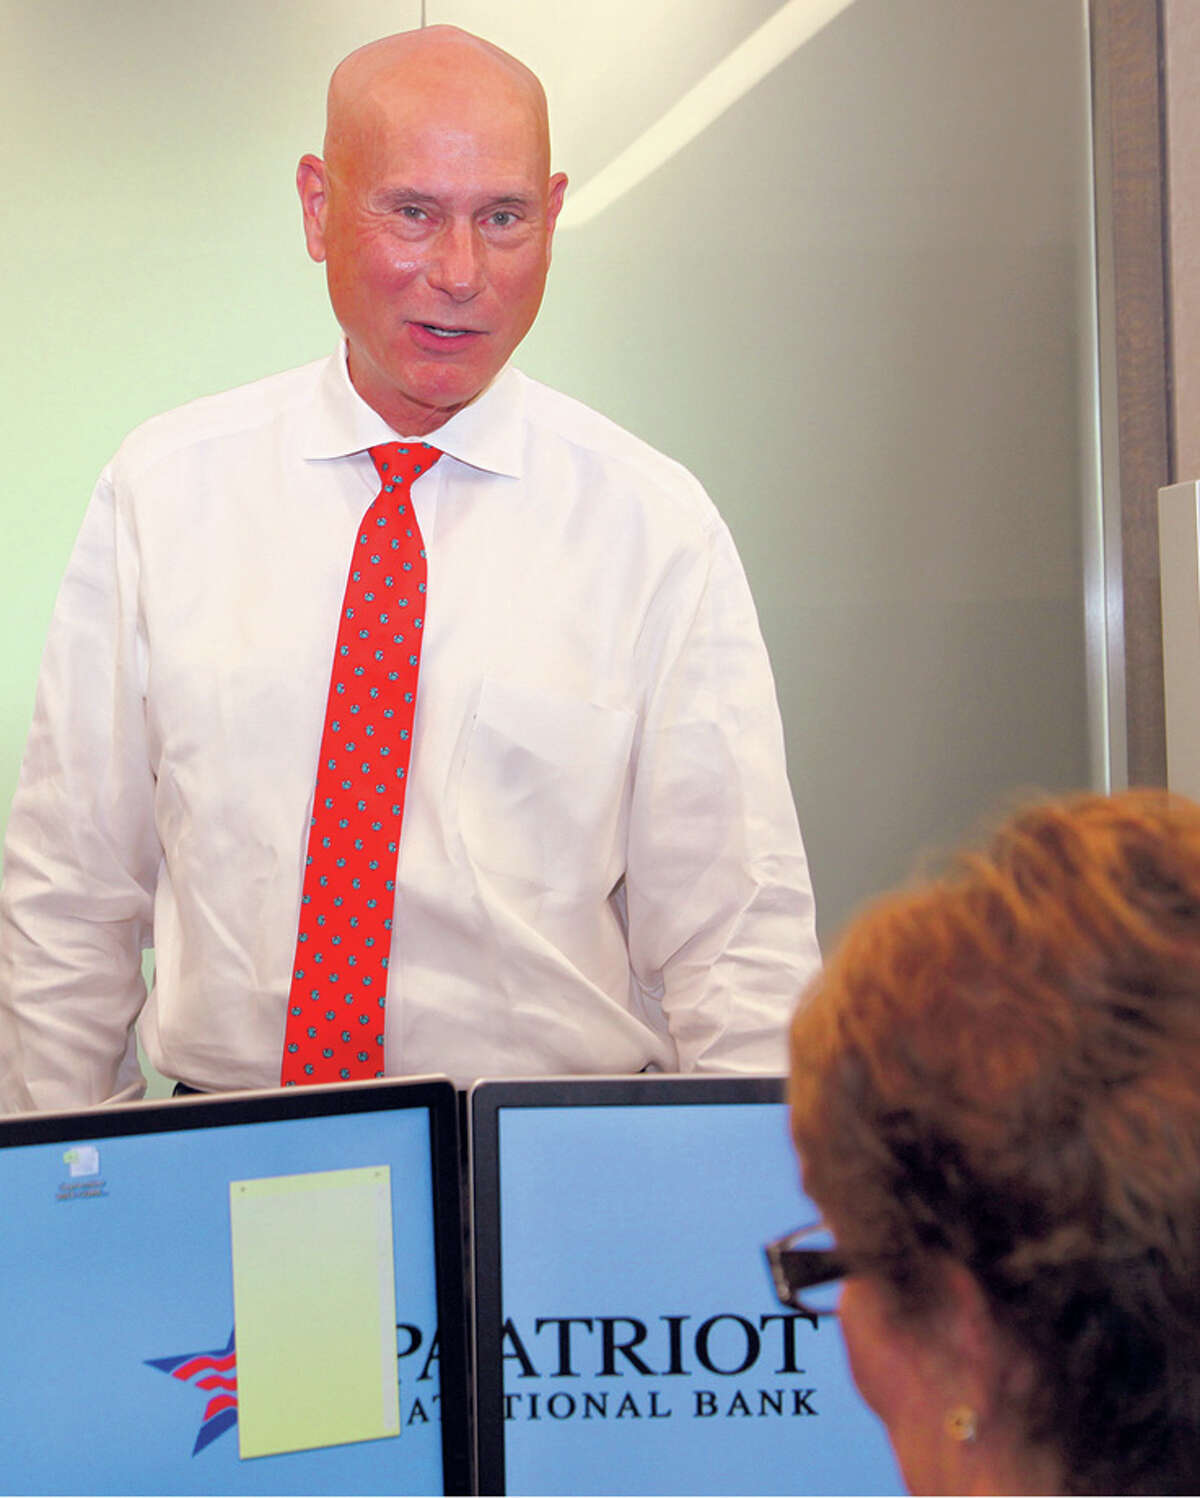 Patriot National Bank CEO Ken Neilson talks with an employee in his Stamford office.